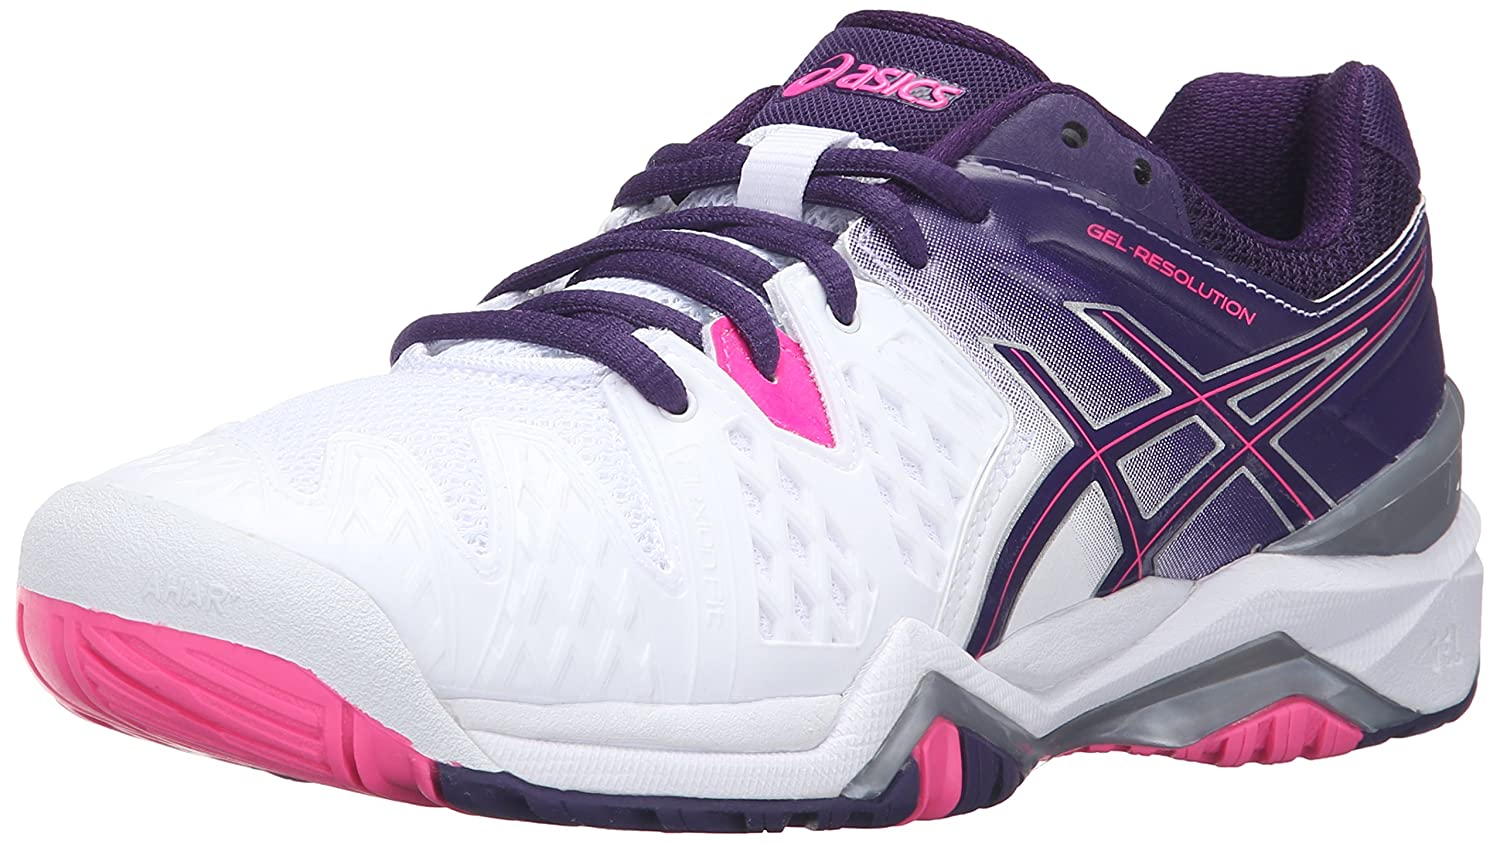 ASICS Gel Resolution 6 WIDE Women's Tennis Shoe White/Silver - WIDE version B0182M4008 12 B(M) US|White/Parachute Purple/Hot Pink